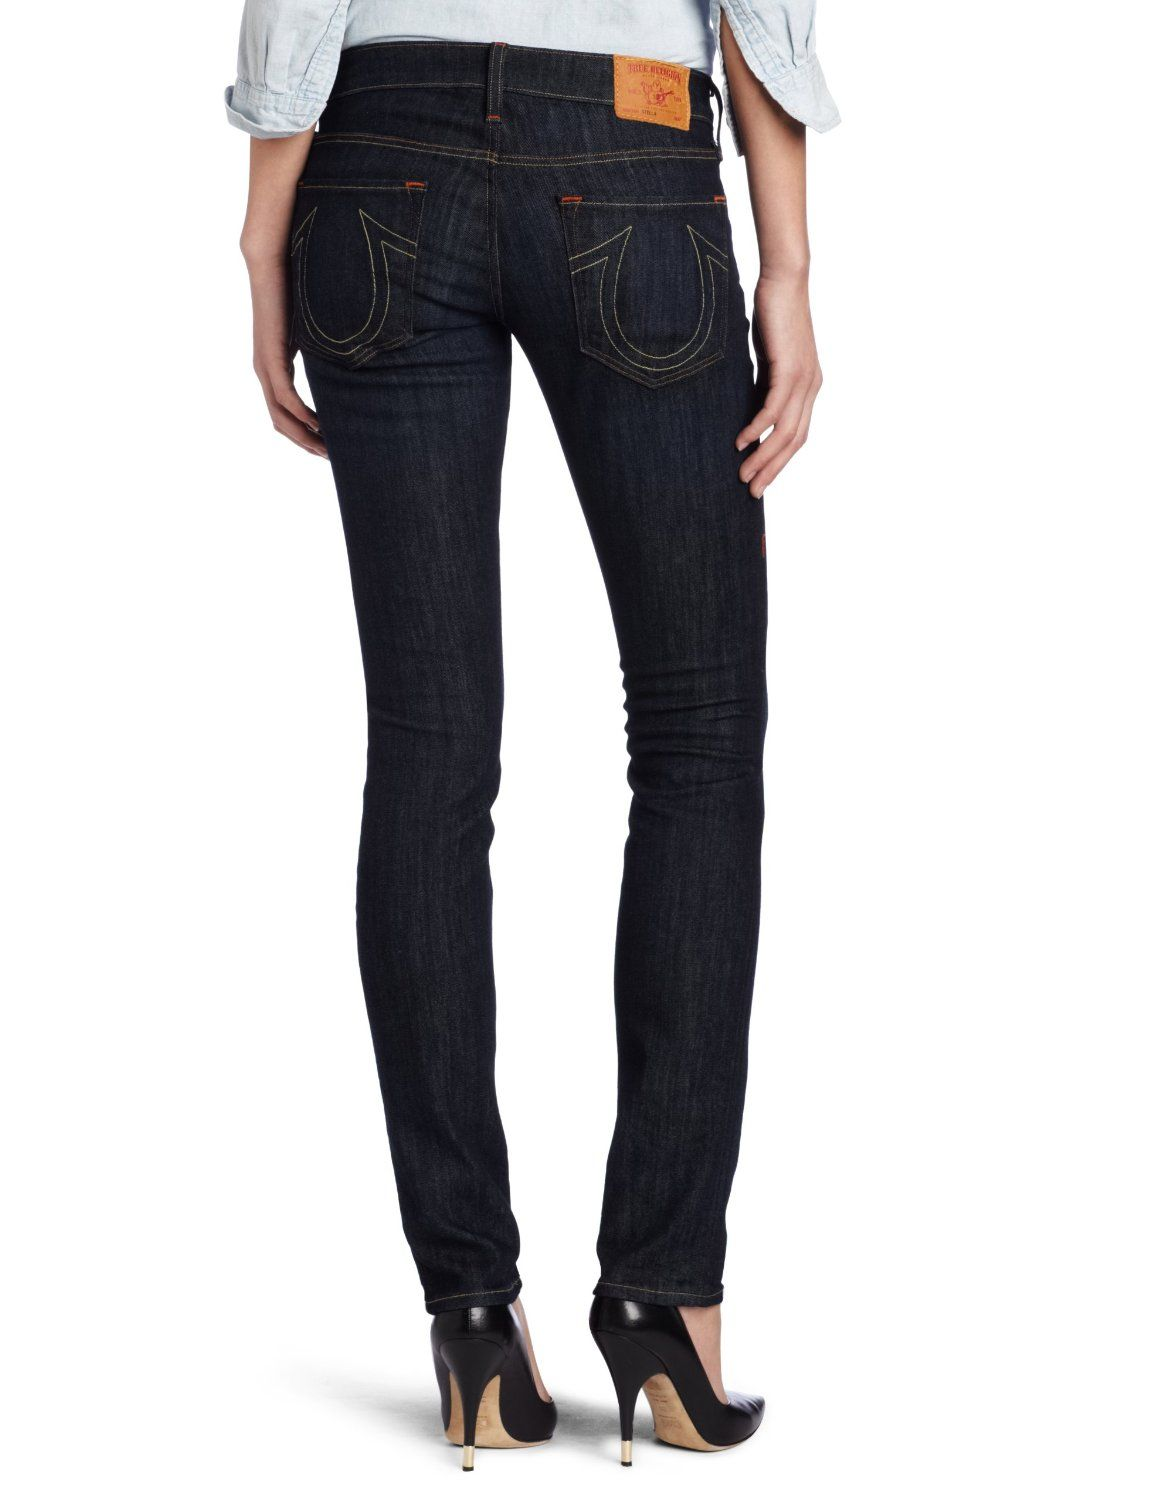 True Religion Women's Stella 32 Inch Inseam Skinny Jean  Price: $100.99